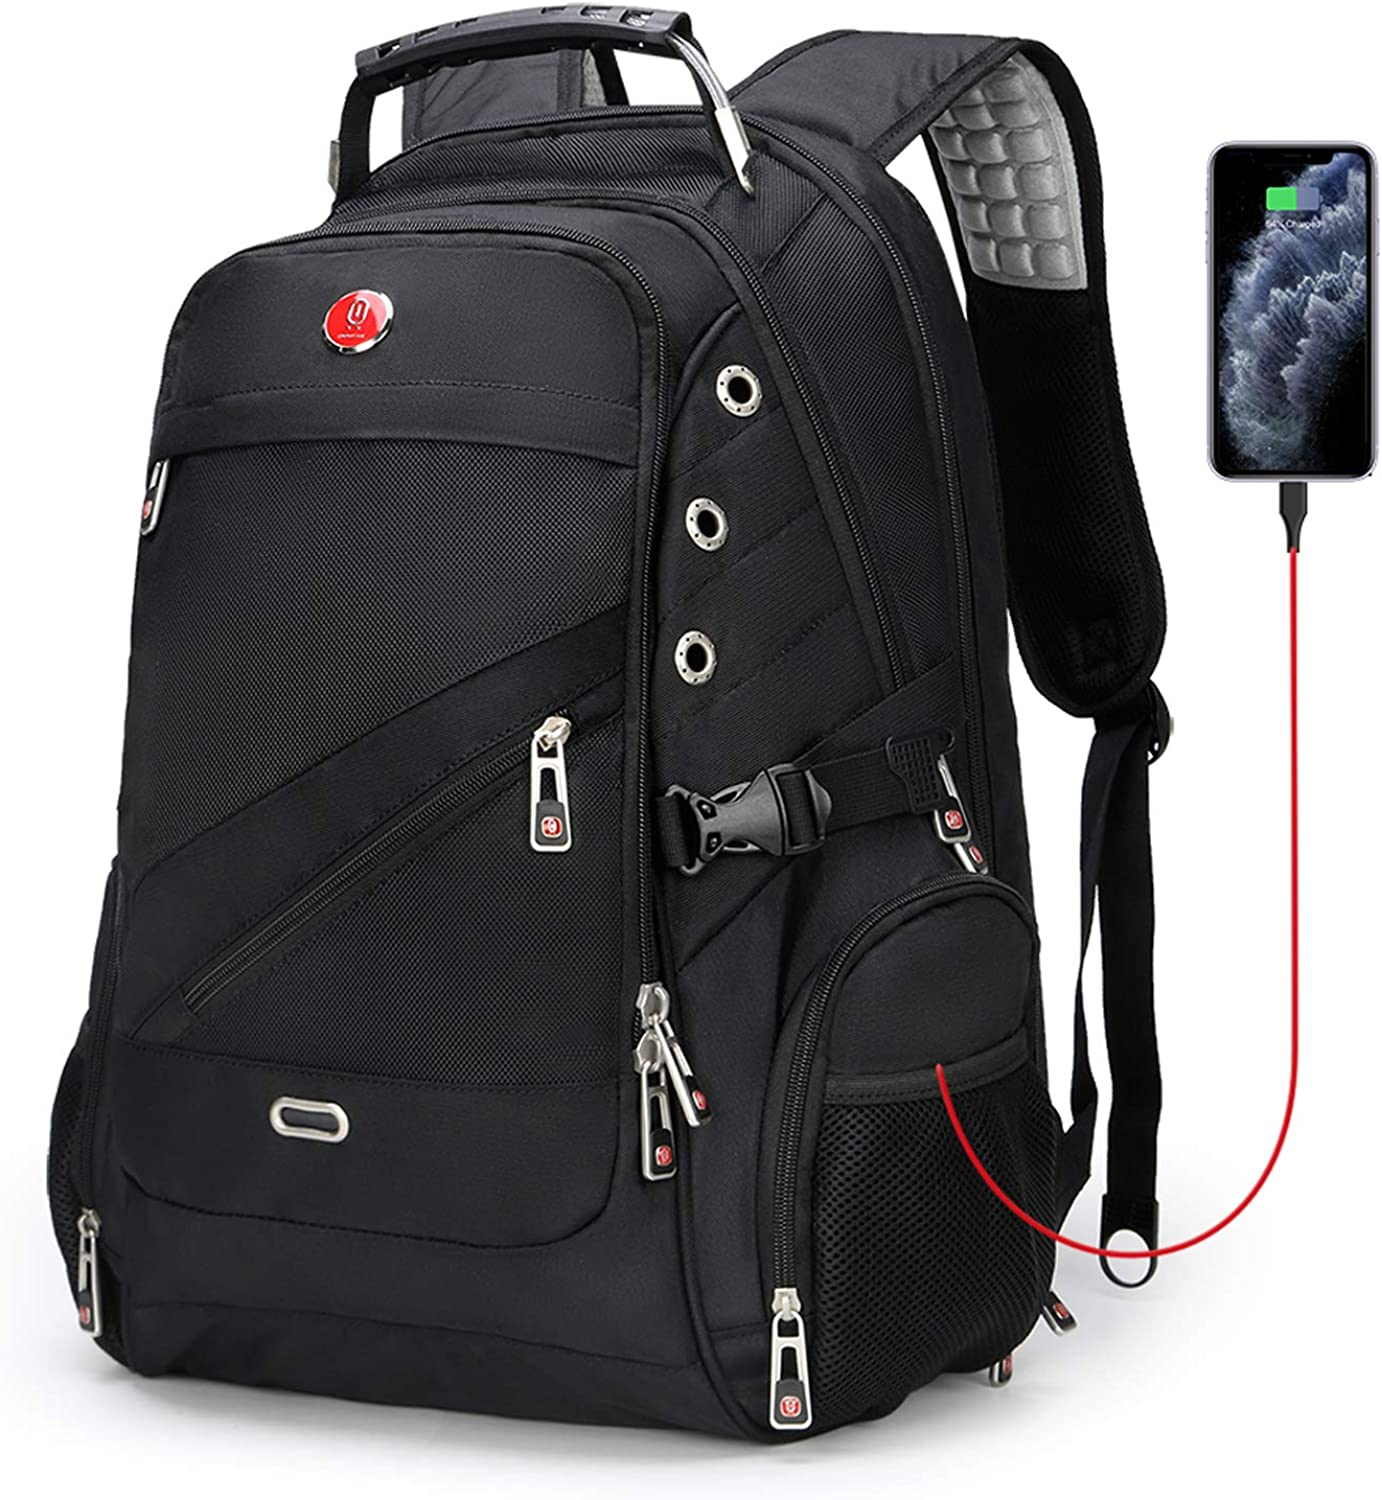 Anti-theft TSA Laptop Backpack with USB Charging Port and Waterproof, Extra Large Travel Backpacks for Women Men- Fits Most 17.3 Inch Laptops and Tablets OAA28115173B